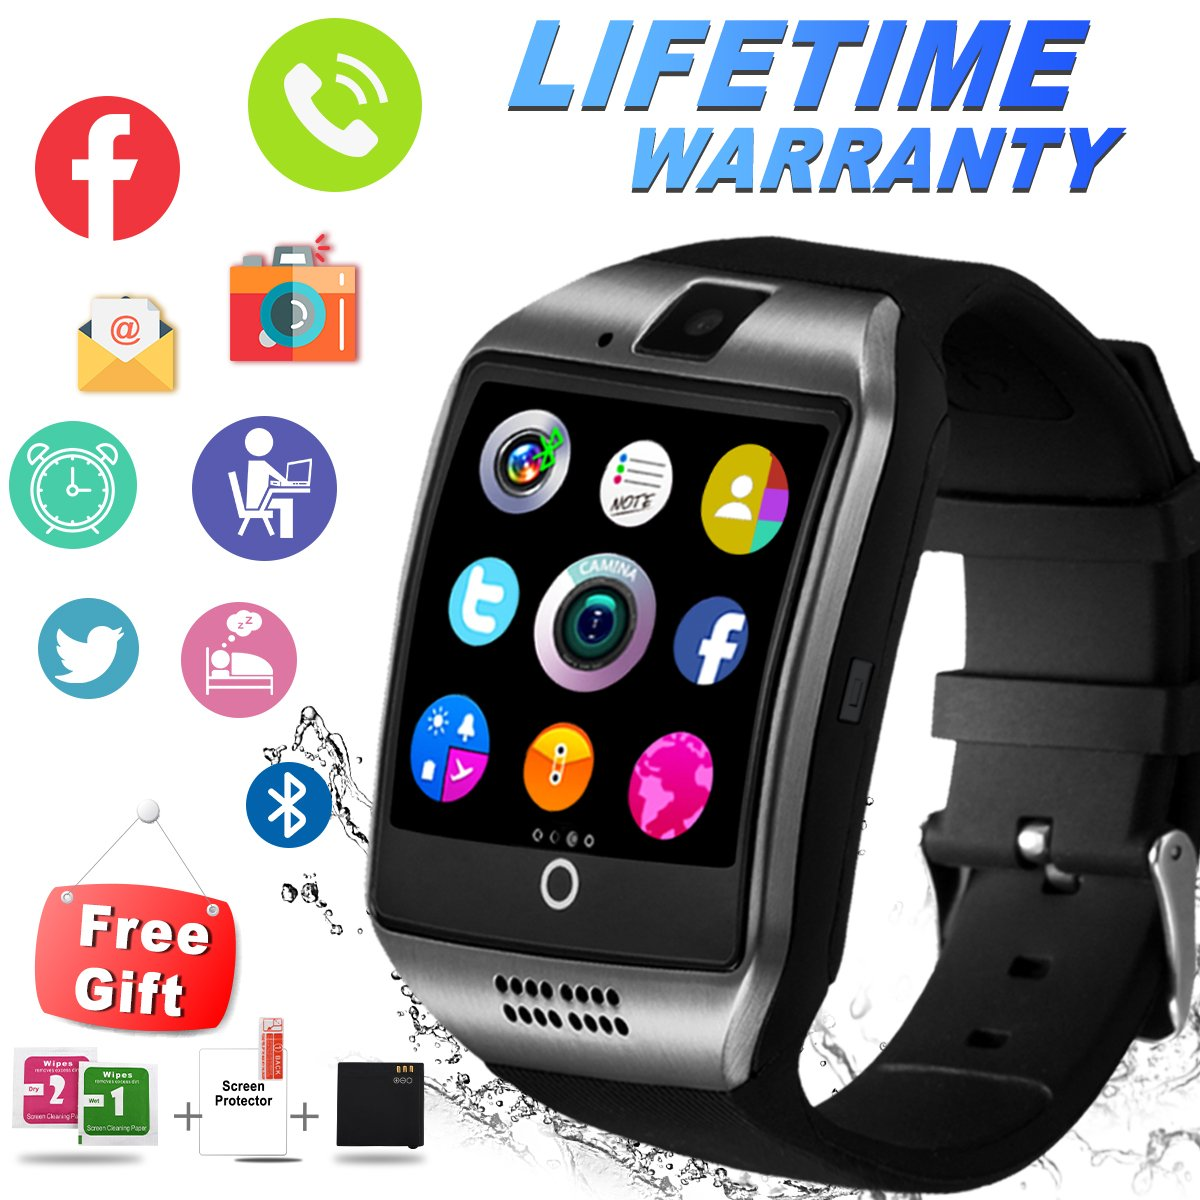 Bluetooth Smart Watch With Camera Sim Card Slot Touch Screen Smartwatch Unlocked Cell Phone Watch Sports Smart Wrist Watch For Android Phones Samsung Sony IOS I (Q-Black) by IFUNDA